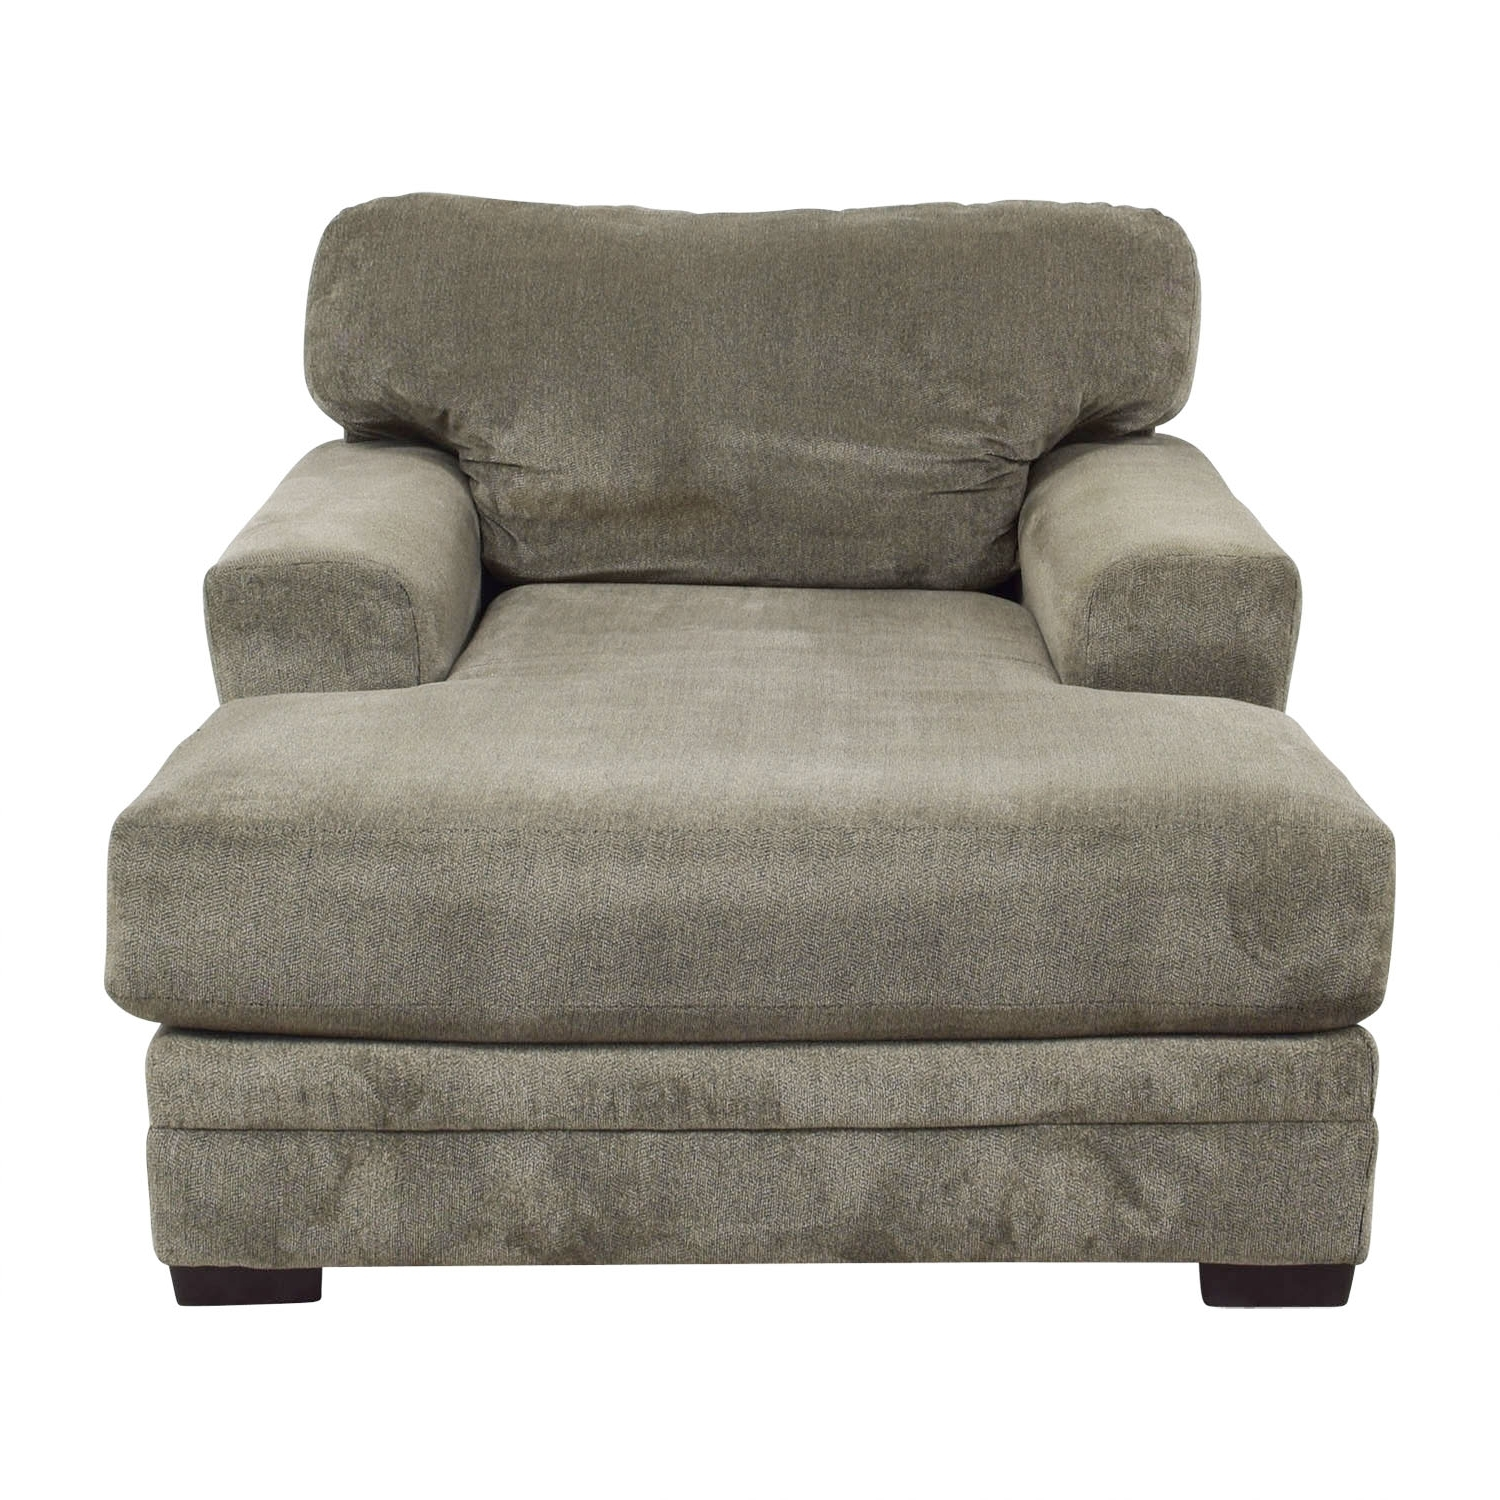 [%81% Off – Bob's Furniture Bob's Furniture Grey Chaise Lounge / Sofas Inside Most Up To Date Gray Chaises|Gray Chaises Within Widely Used 81% Off – Bob's Furniture Bob's Furniture Grey Chaise Lounge / Sofas|Best And Newest Gray Chaises Inside 81% Off – Bob's Furniture Bob's Furniture Grey Chaise Lounge / Sofas|Widely Used 81% Off – Bob's Furniture Bob's Furniture Grey Chaise Lounge / Sofas With Gray Chaises%] (View 2 of 15)